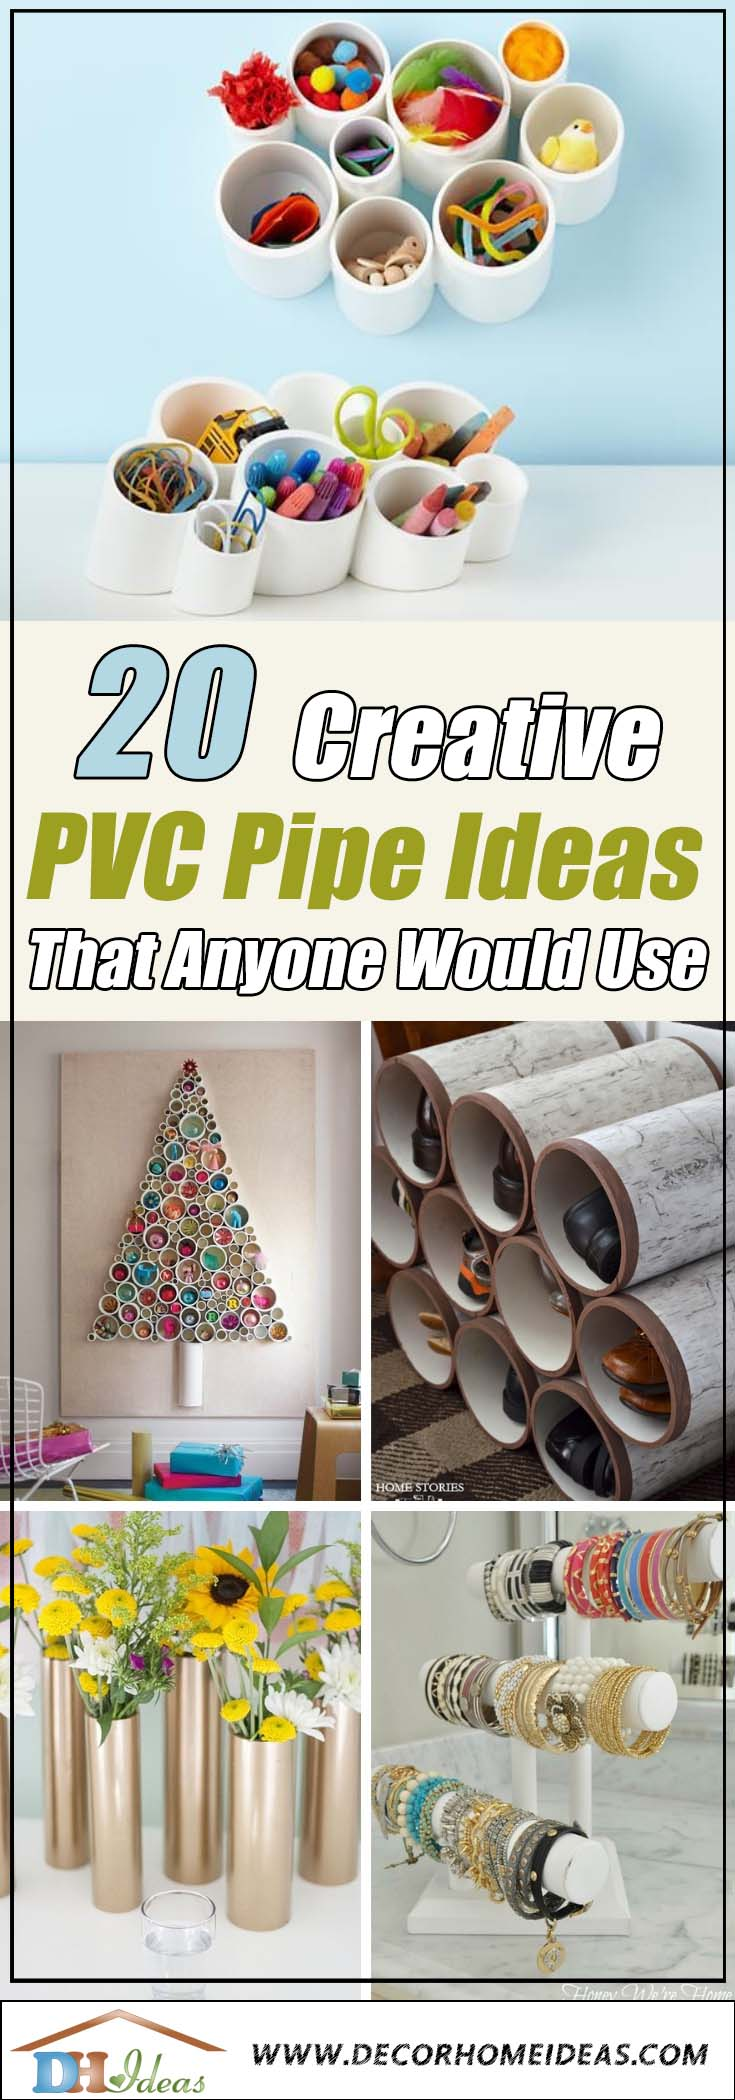 20 Creative PVC Pipe Ideas That Anyone Would Use | DIY amazing decoration with PVC pipes